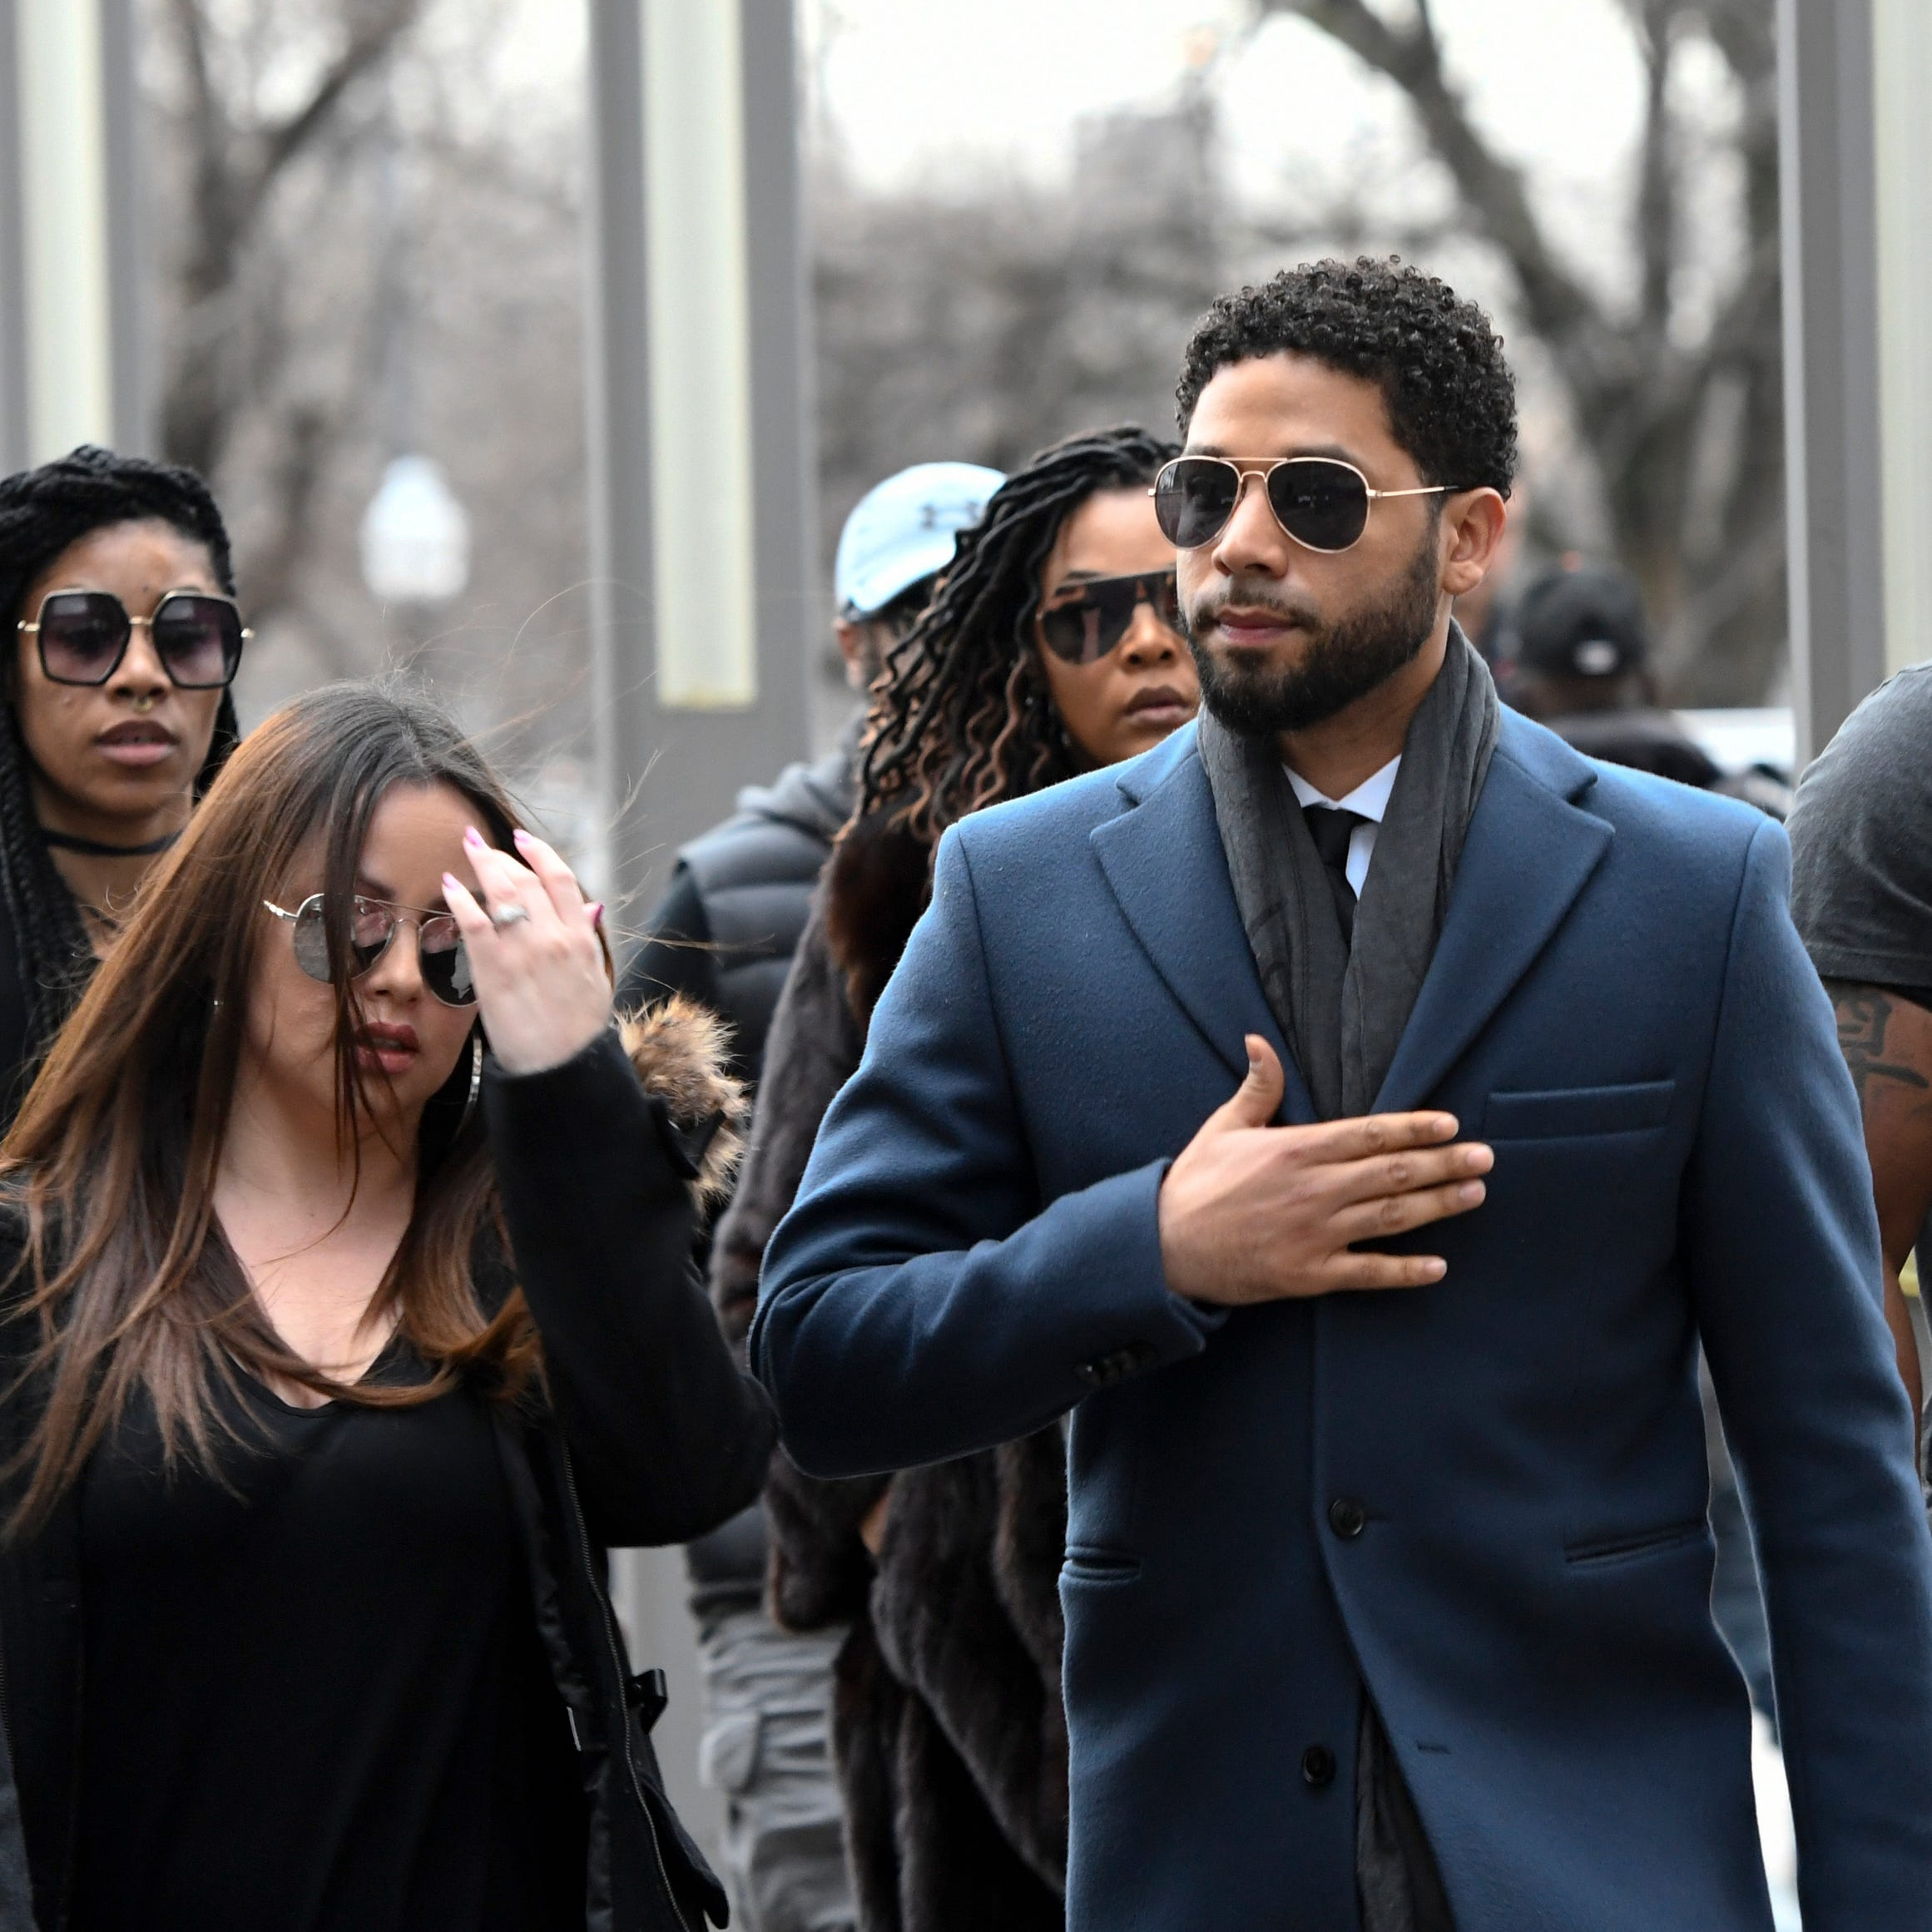 """Empire"" actor Jussie Smollett, center, arrives at Chicago's Leighton Criminal Court Building for his arraignment hearing on Thursday, March 14, 2019."